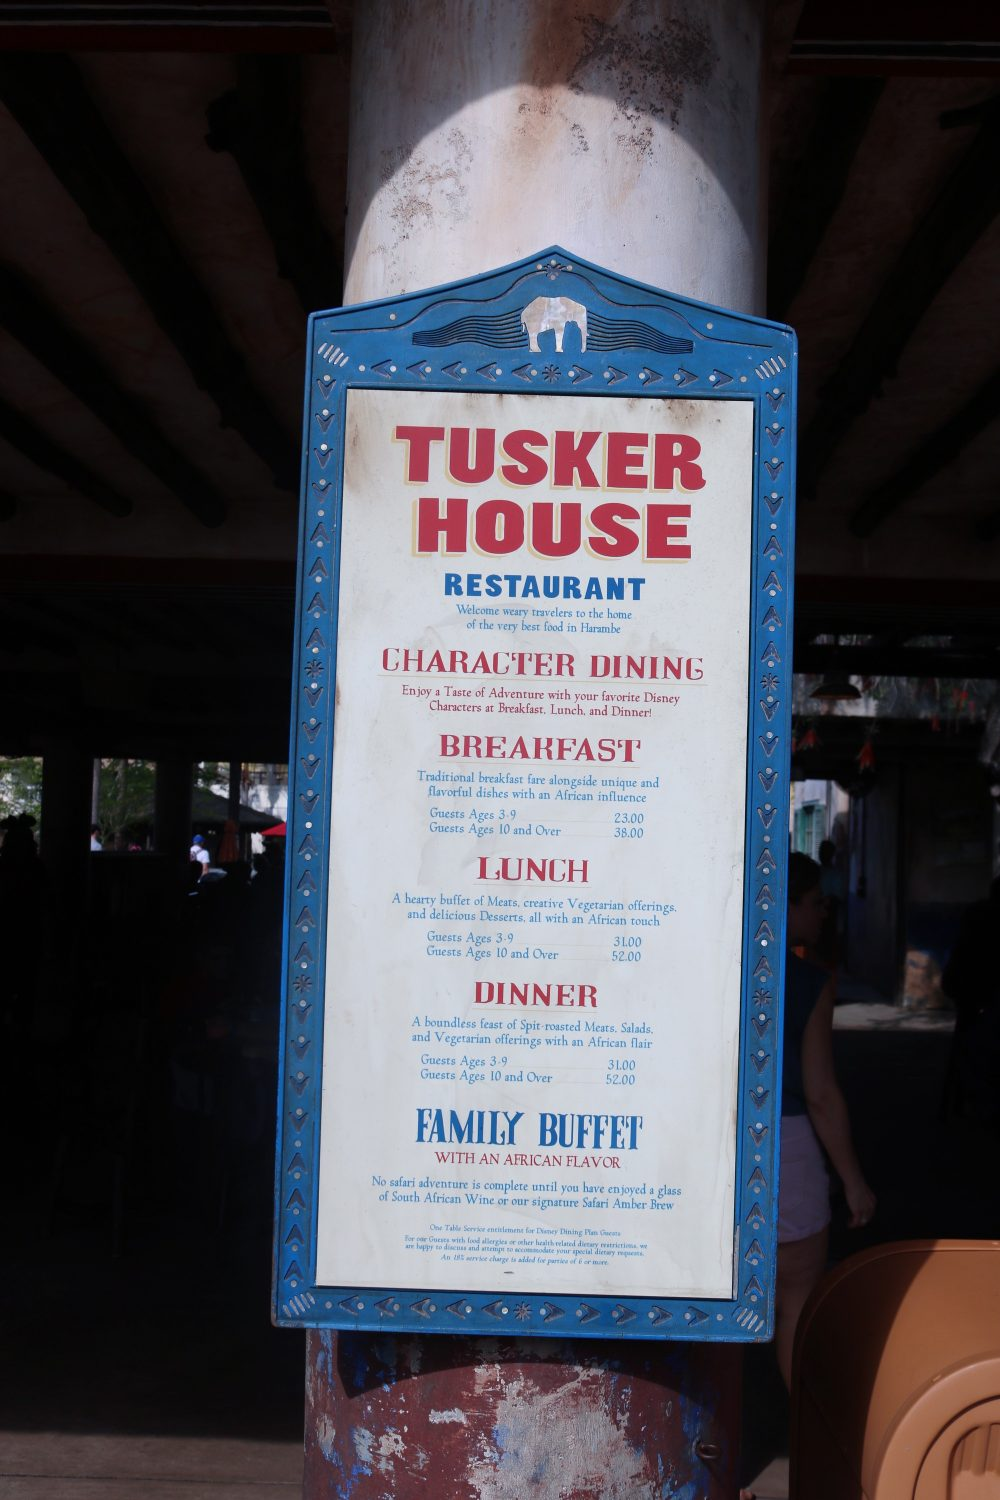 Breakfast at Tusker House Restaurant in Animal Kingdom